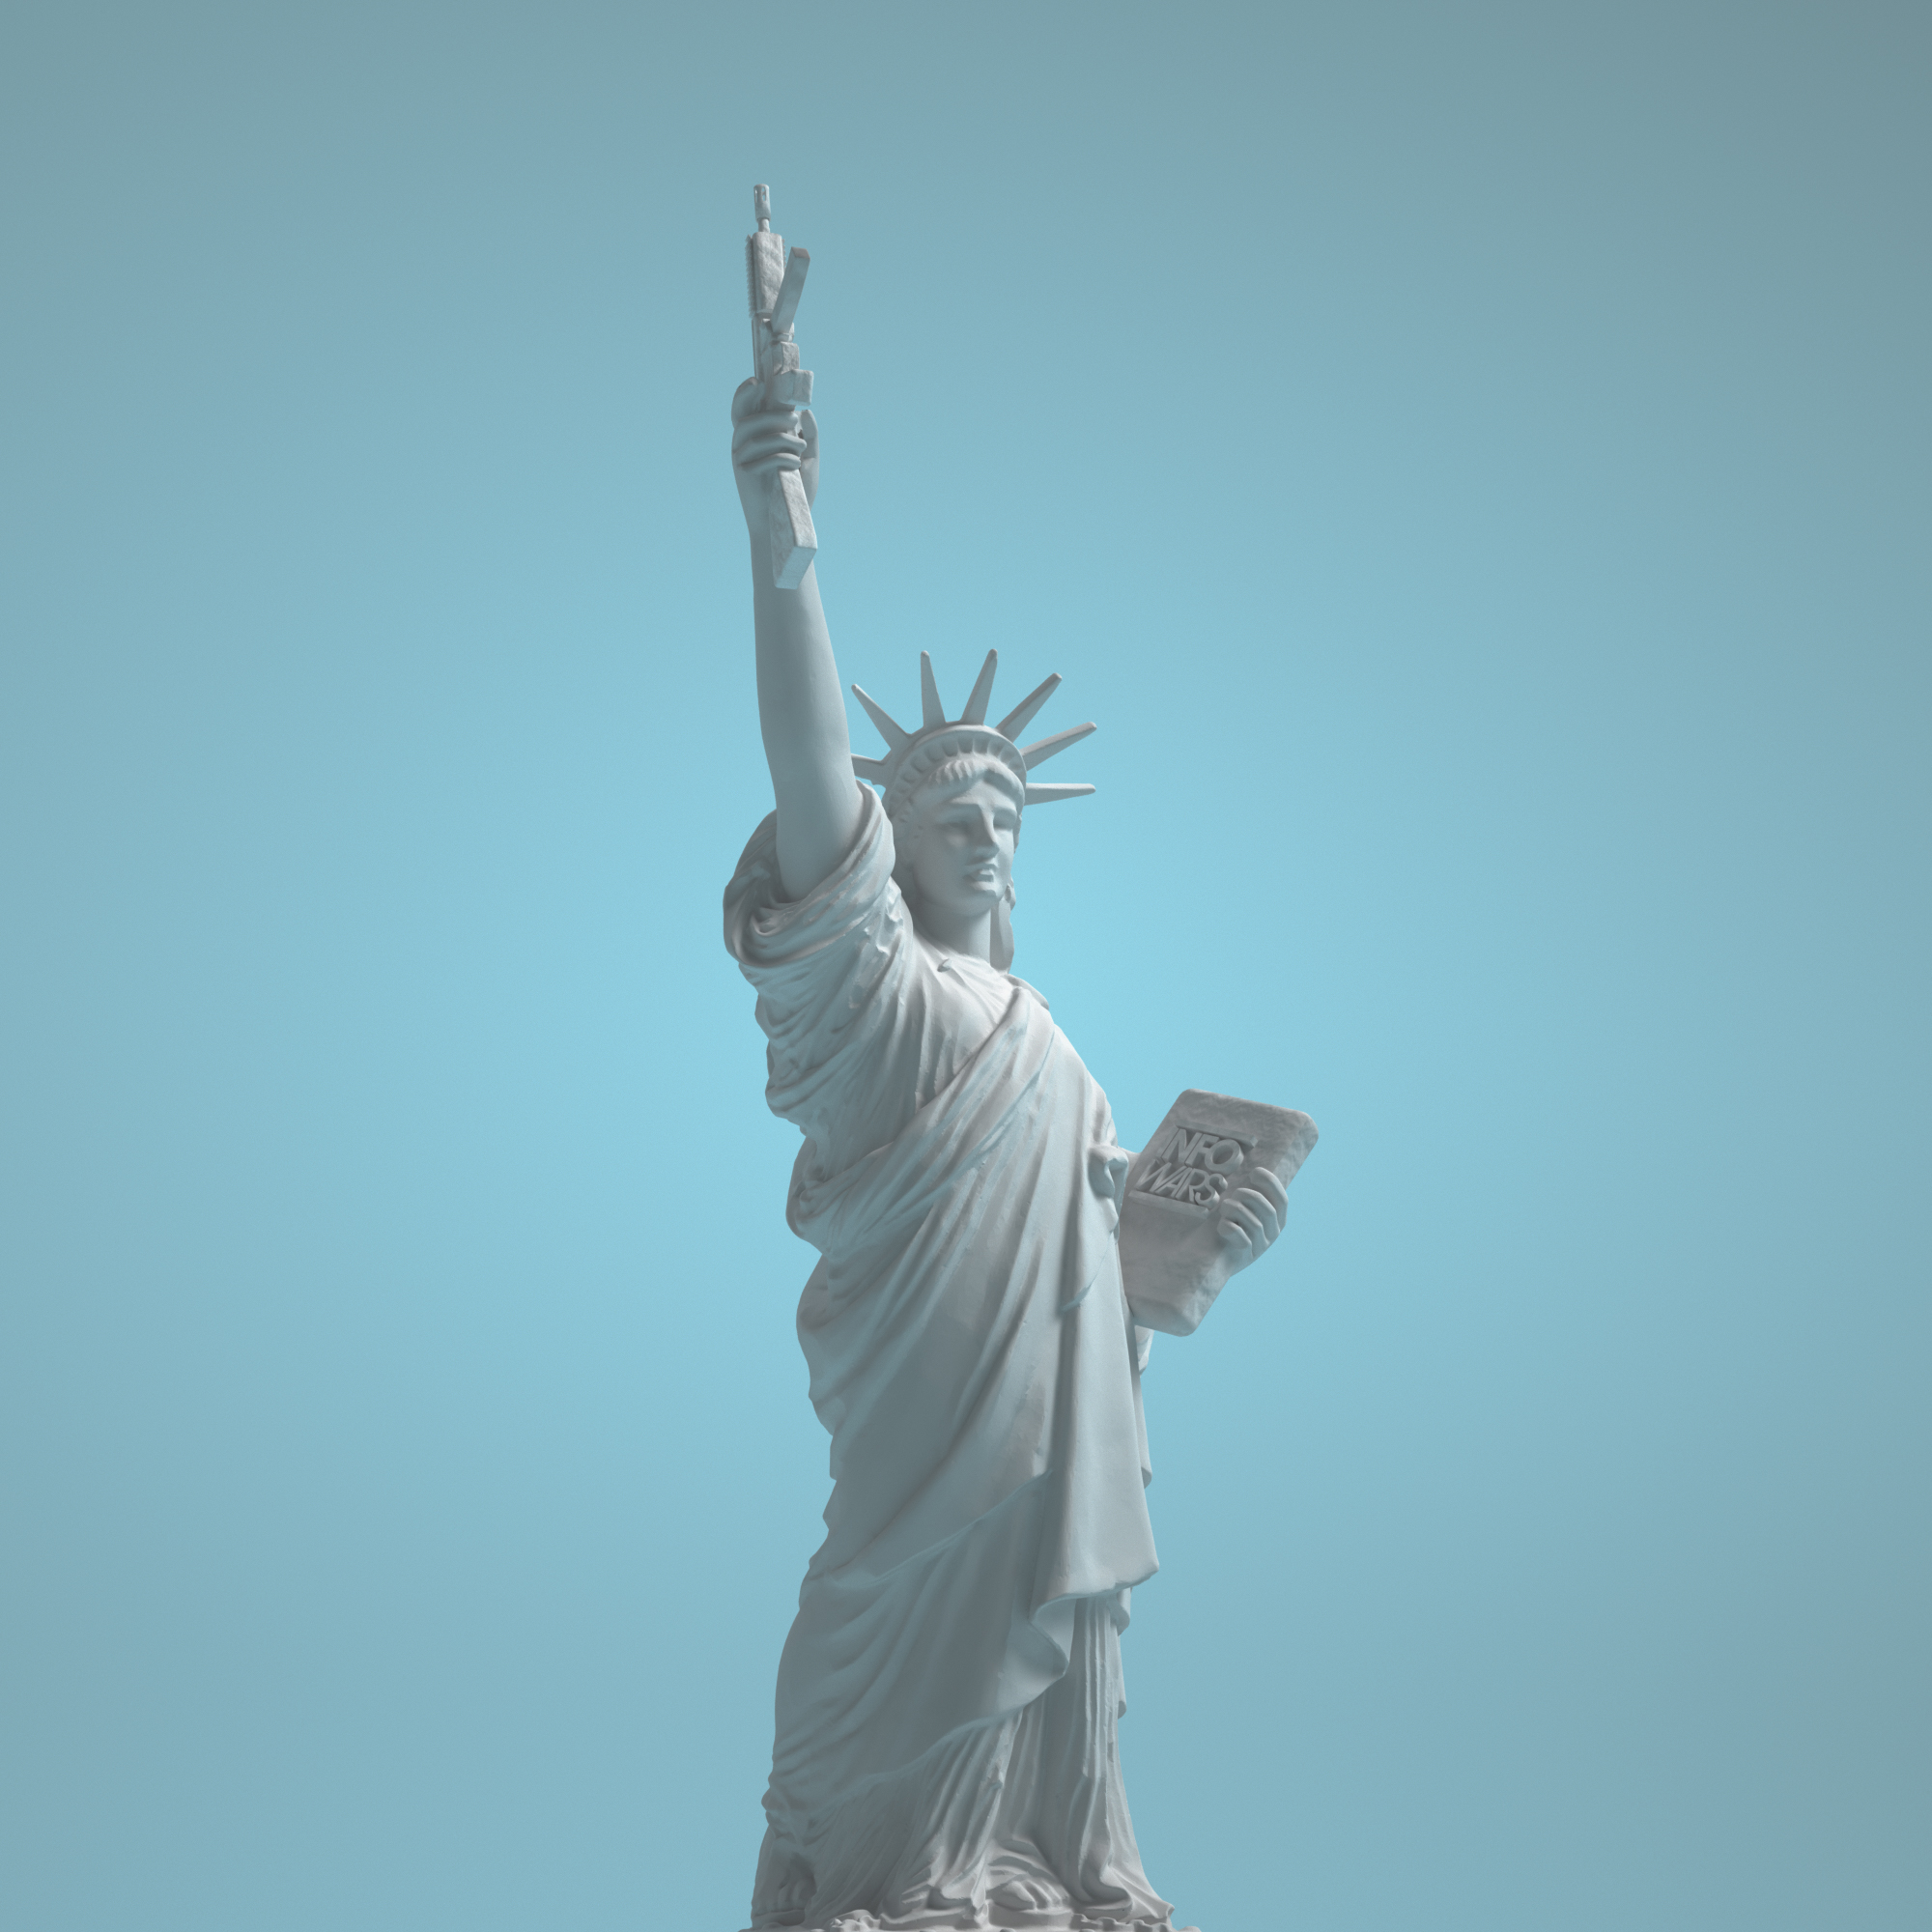 LadyLiberty_edit.jpg